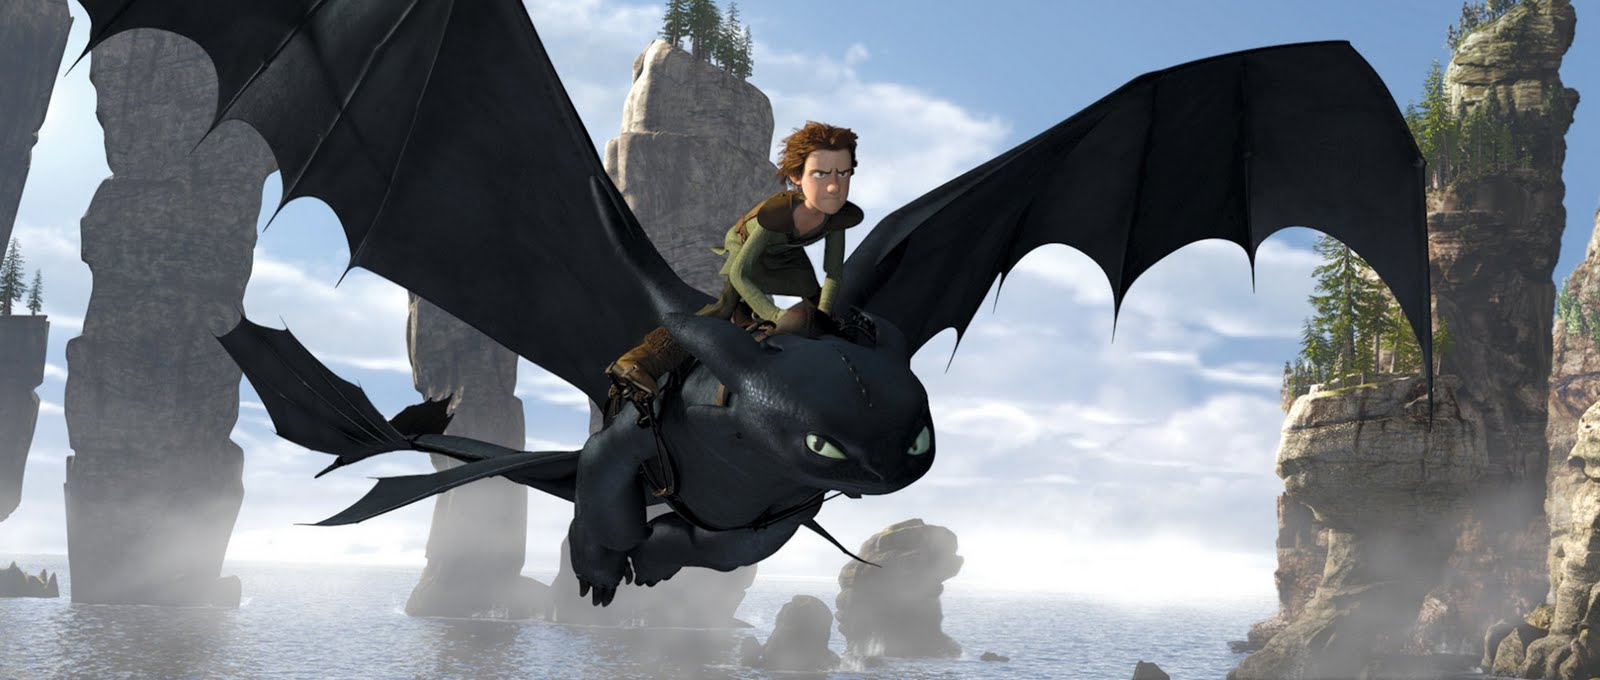 Best How to Train Your Dragon 3D movie Wallpapers